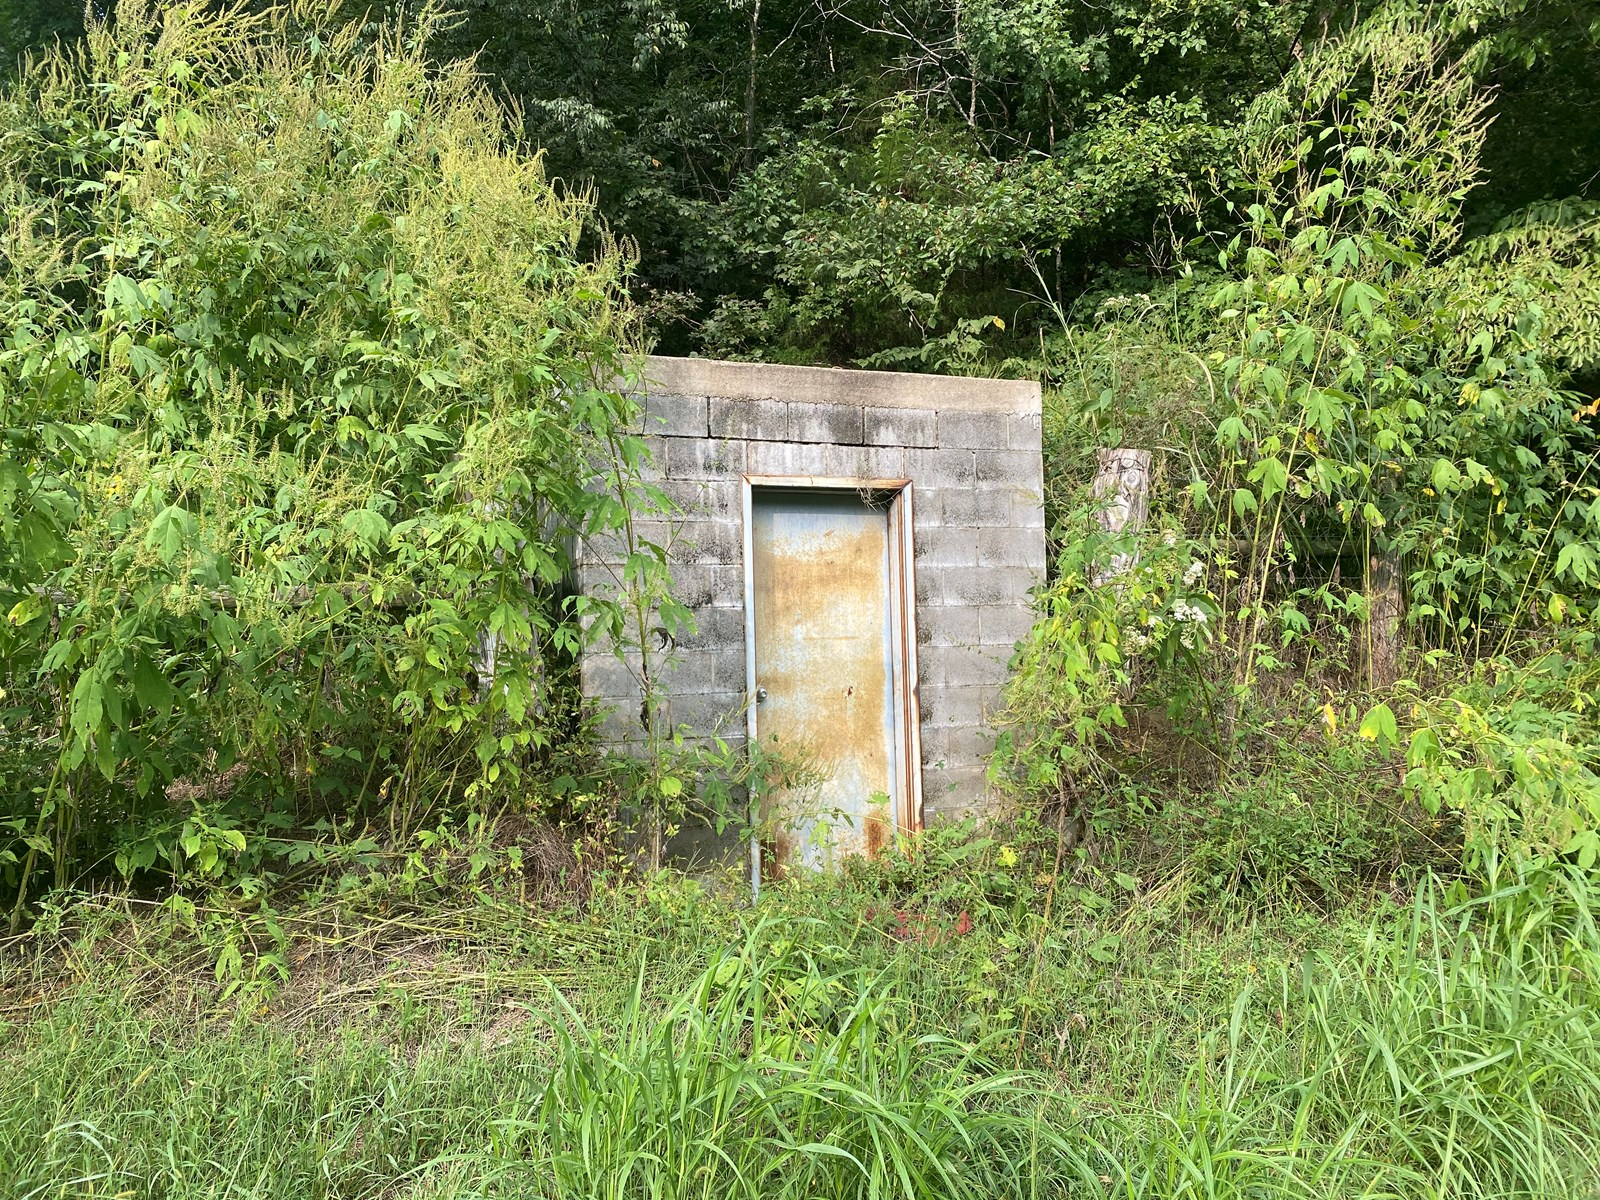 Lot for sale in Tn with septic, spring water, & electricity.